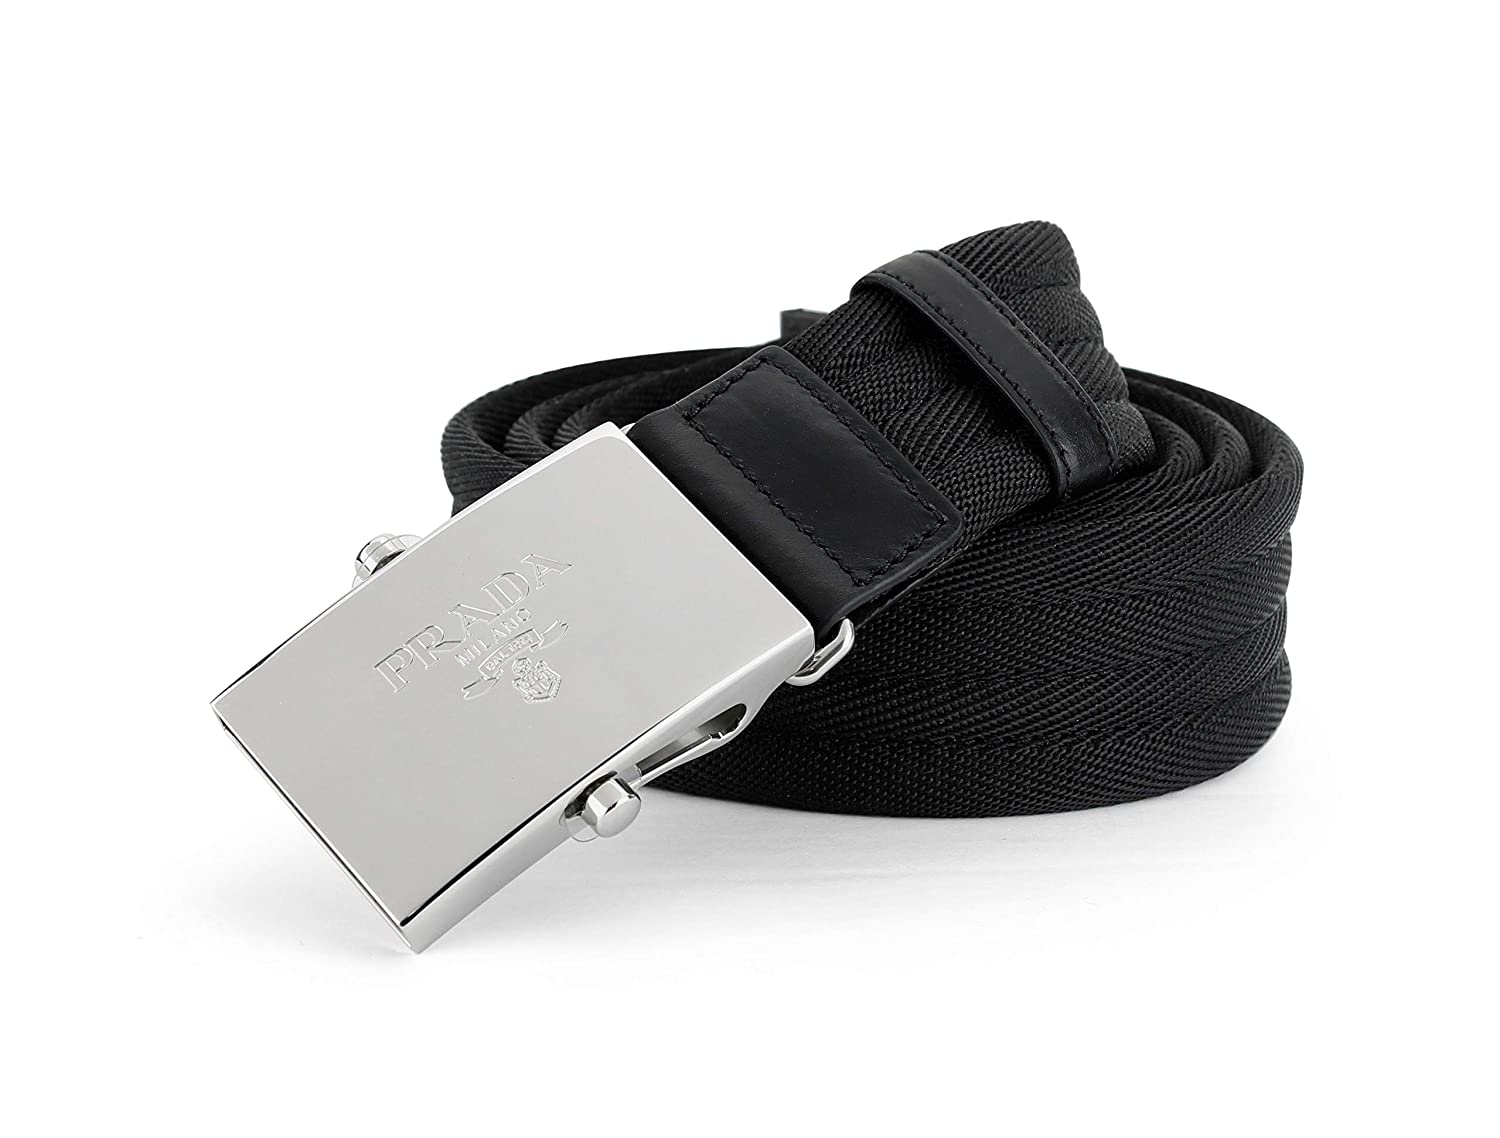 8c7a685d532455 Prada Nastro Sport 1 Web Logo Plaque Belt, Black 2CN003 (34-36 US (90)) at  Amazon Men's Clothing store: